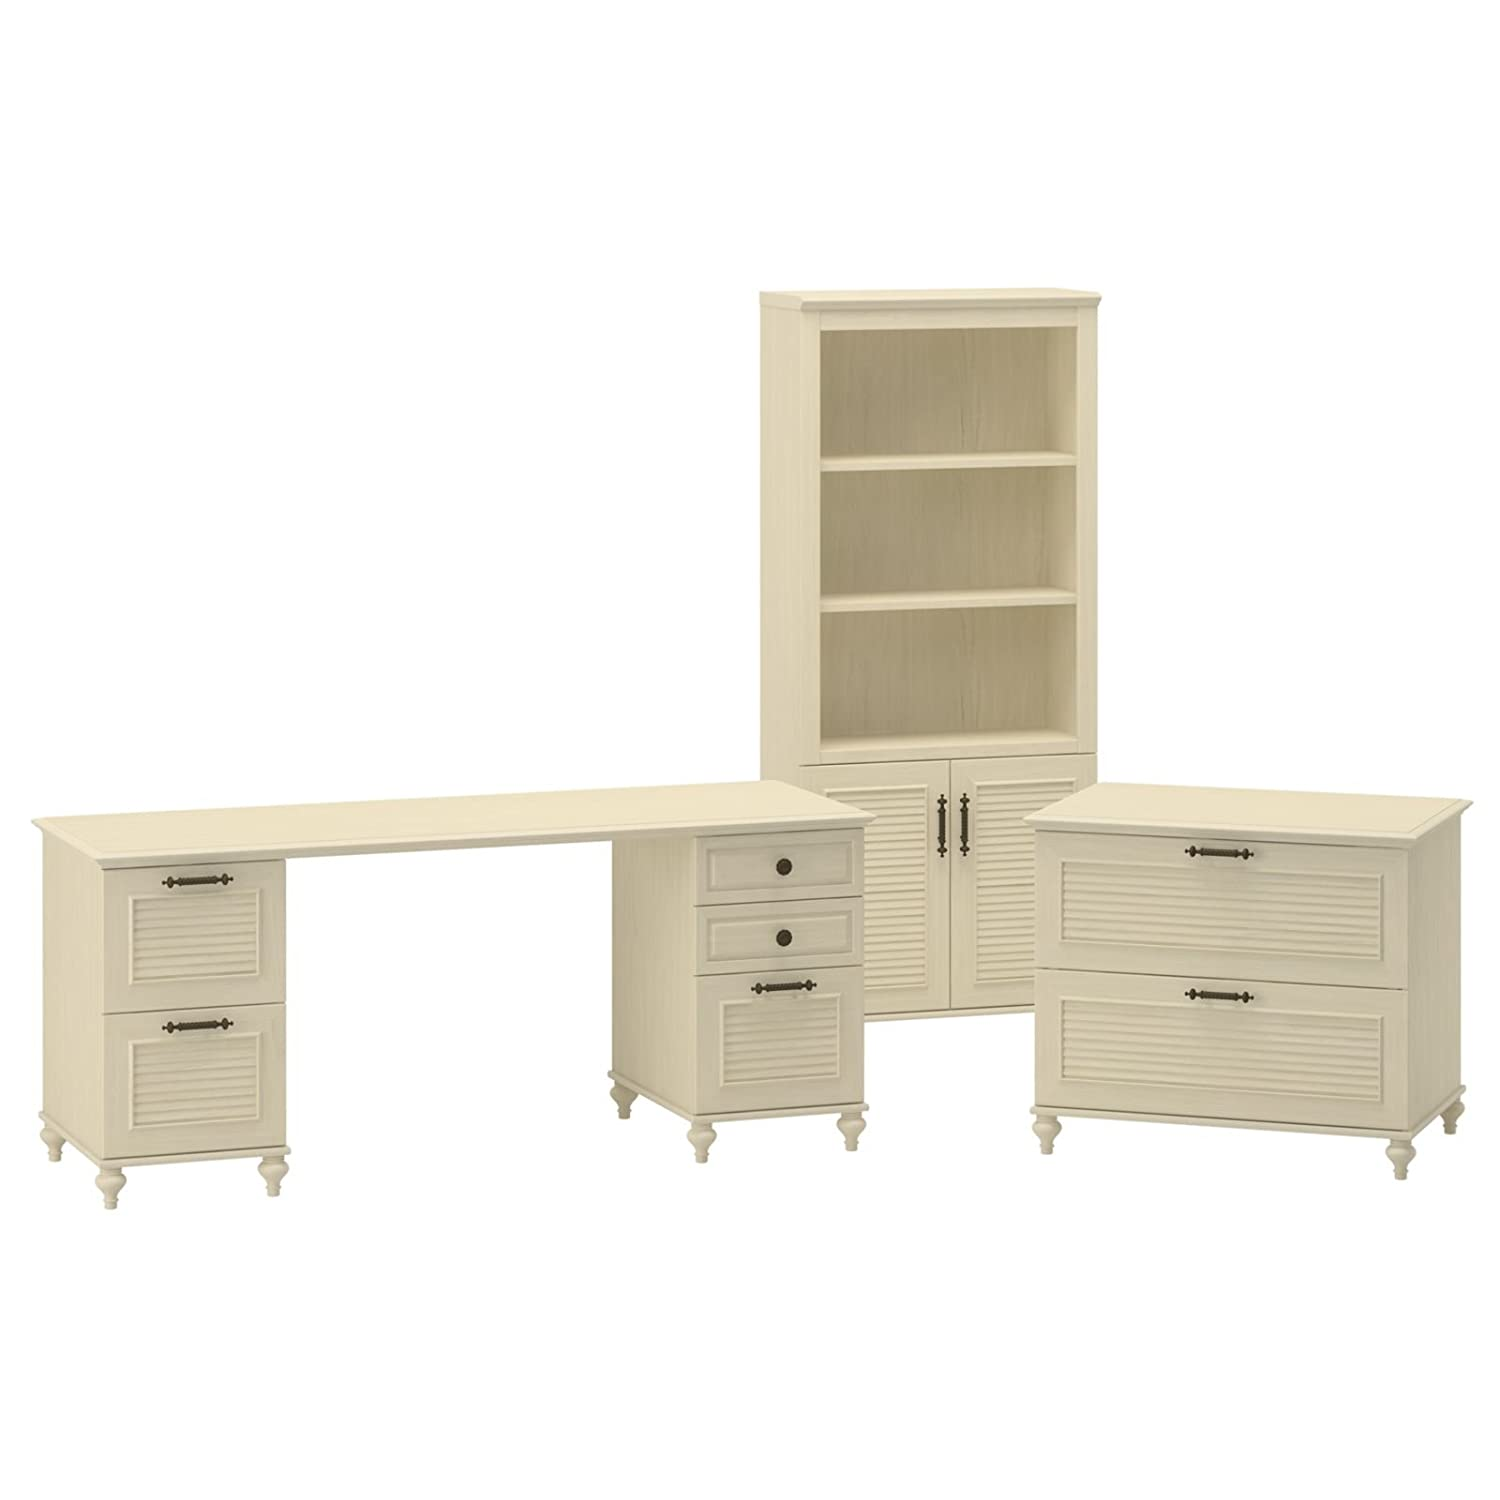 desk filing collection cabinet industries by mesmerizing indust corner office hutch desks shaped with reviews parts furniture bush l bbf